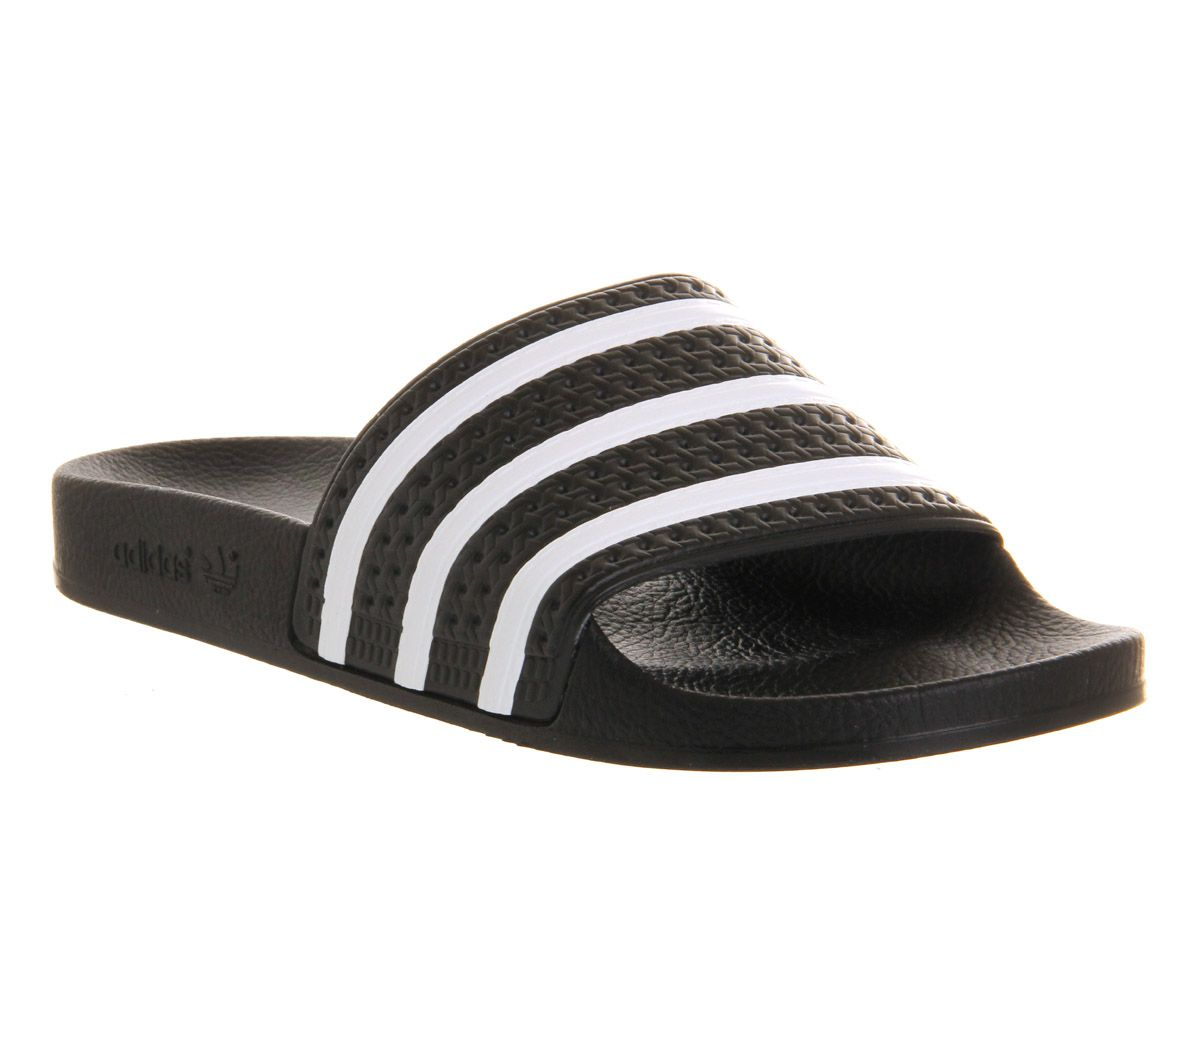 ac27e7ae87e6 adidas Adilette Sliders Black White - Office Girl